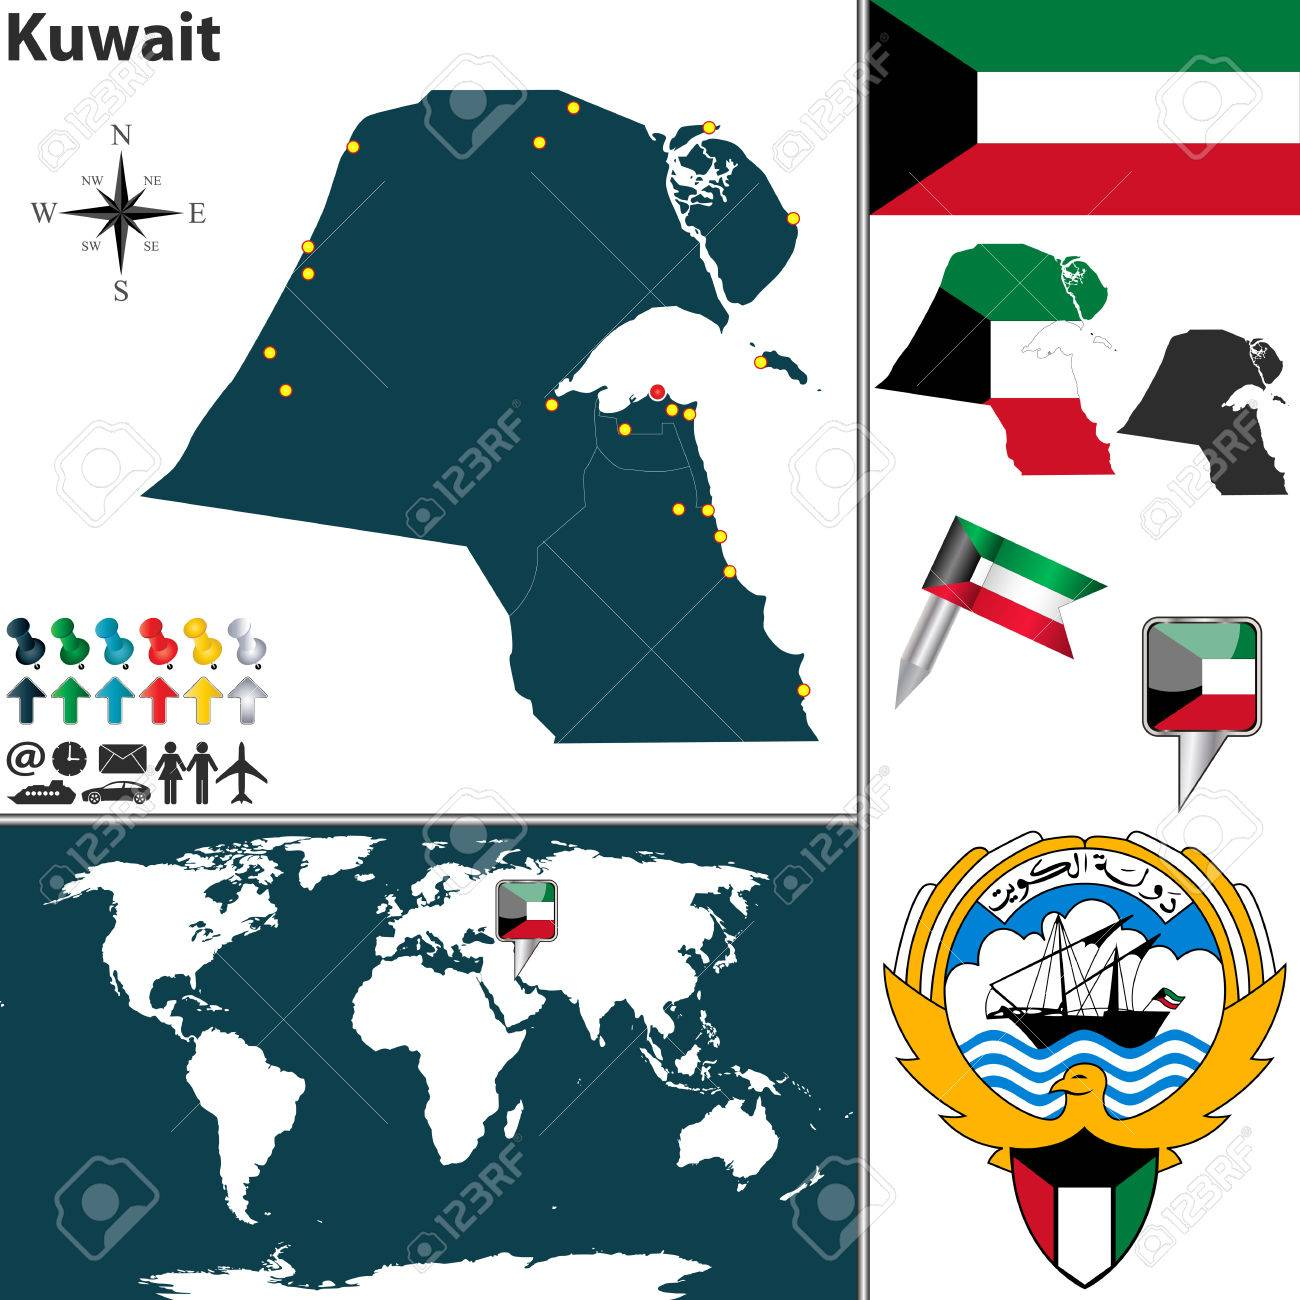 Map of kuwait with regions coat of arms and location on world map of kuwait with regions coat of arms and location on world map stock vector gumiabroncs Gallery